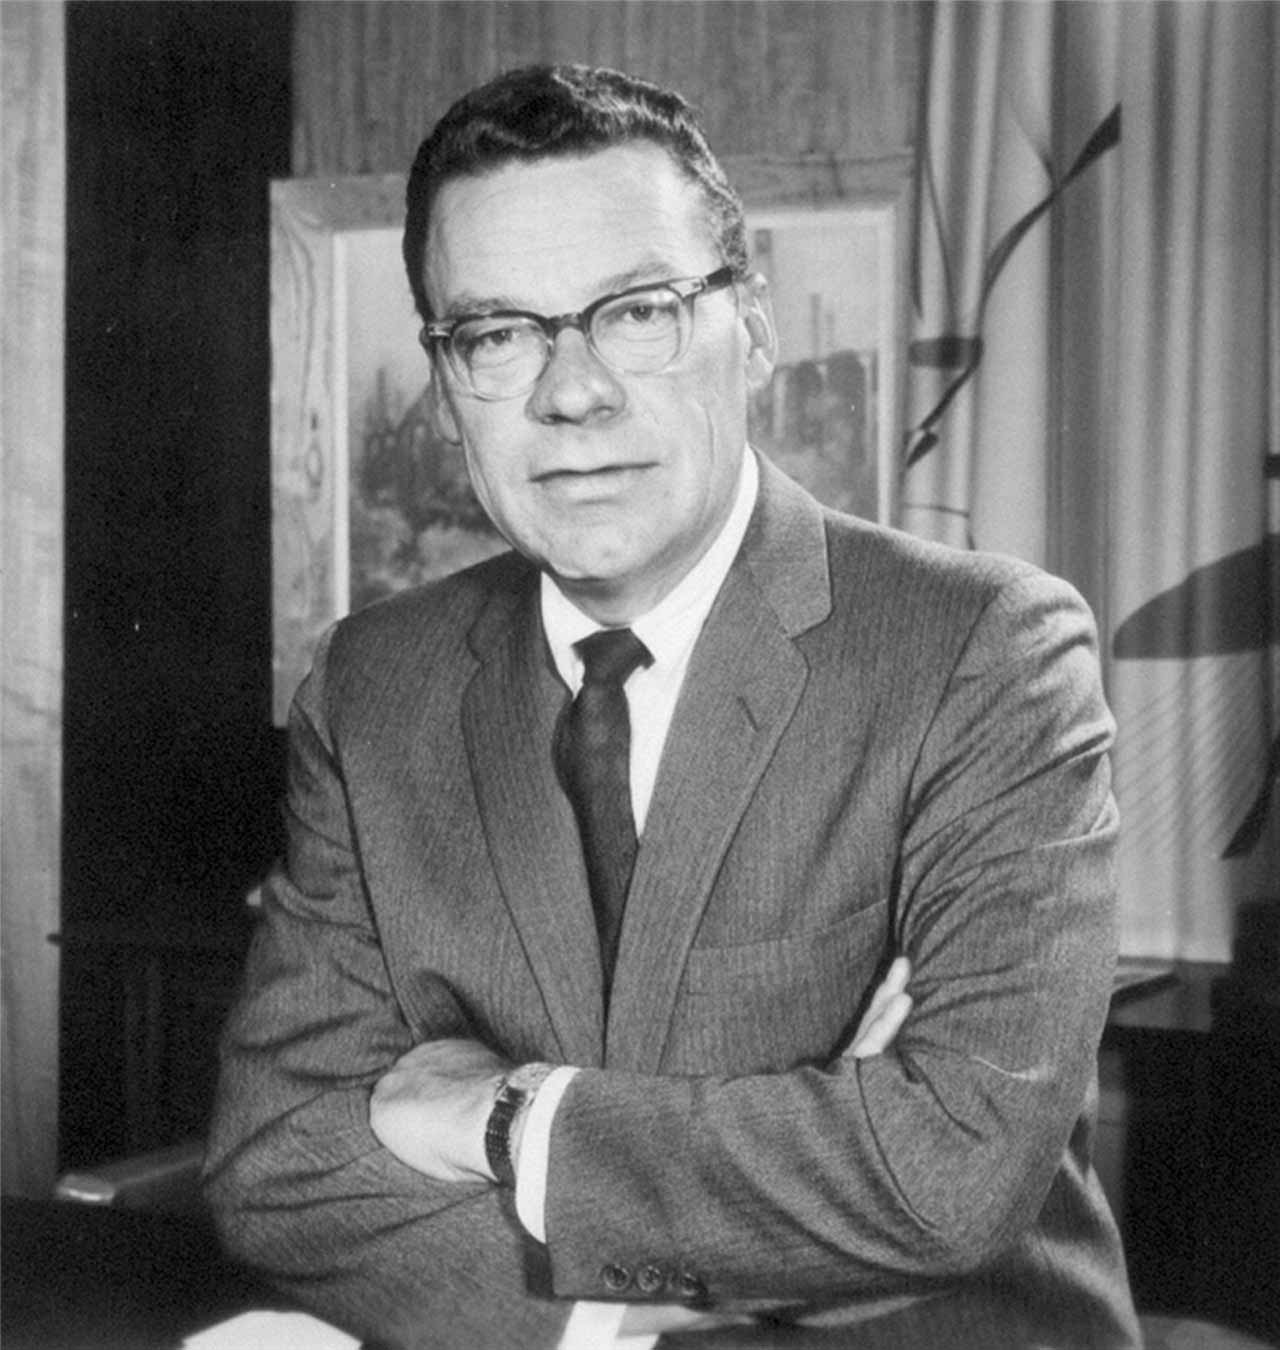 Black and white photo of the Master and Dean of Personal Development, Earl Nightingale